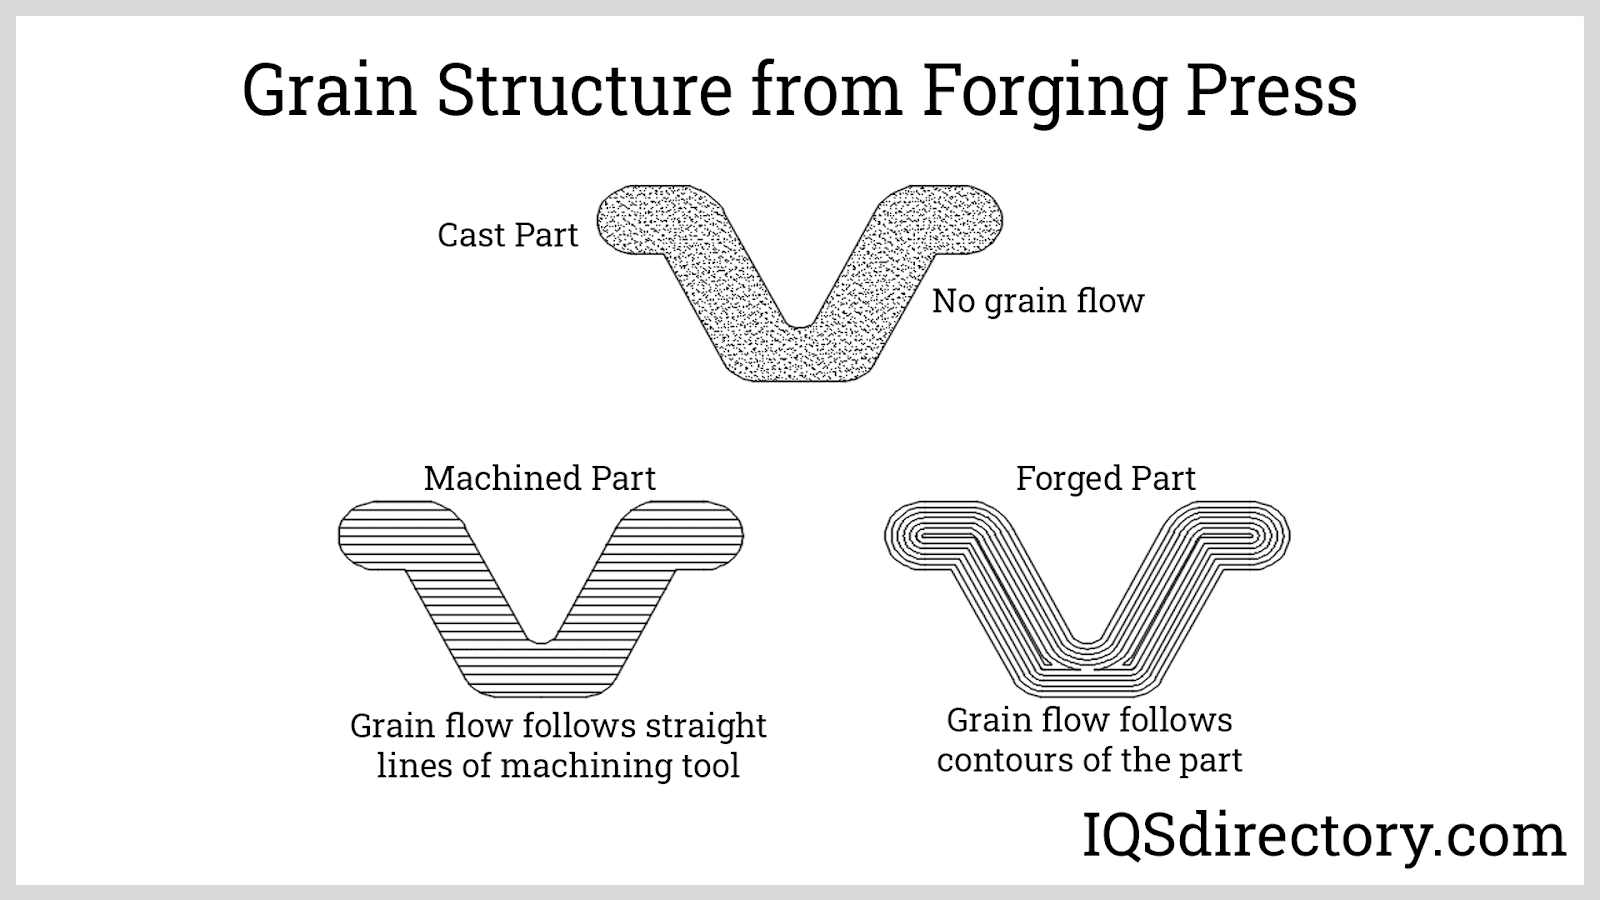 Grain Structure from Forging Press